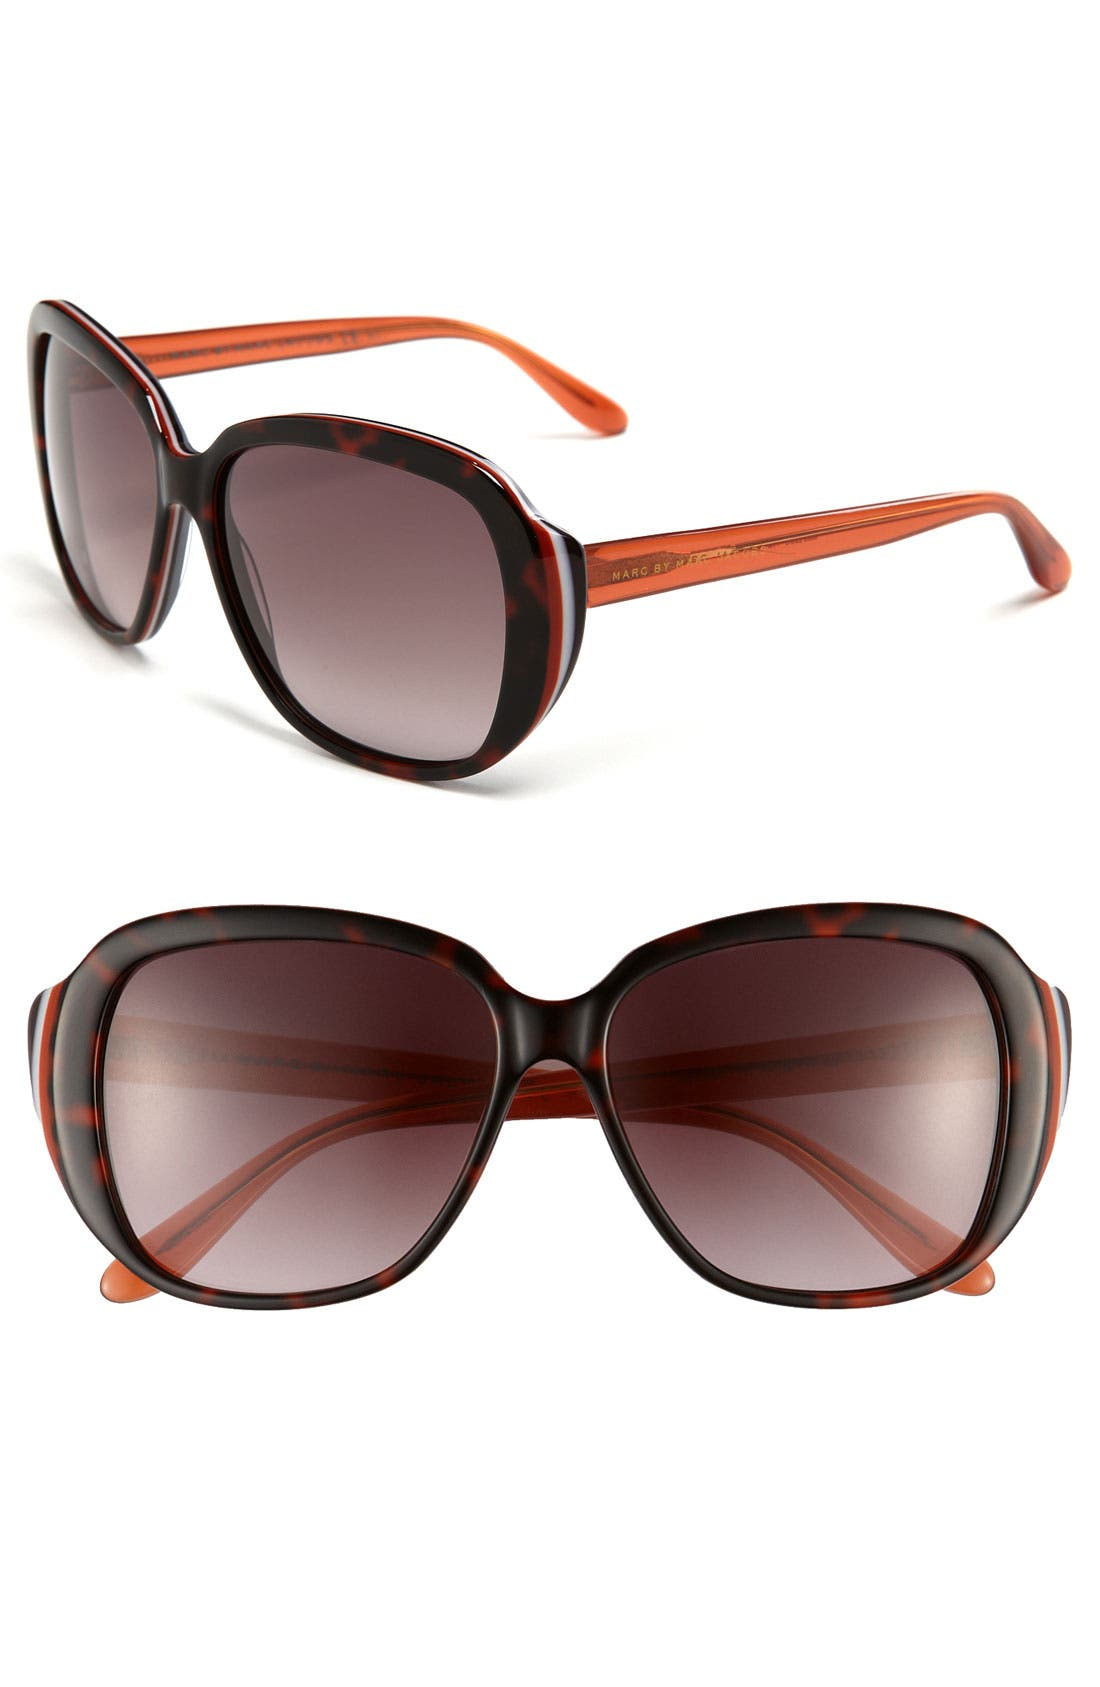 Alternate Image 1 Selected - MARC BY MARC JACOBS 'Classic' Sunglasses